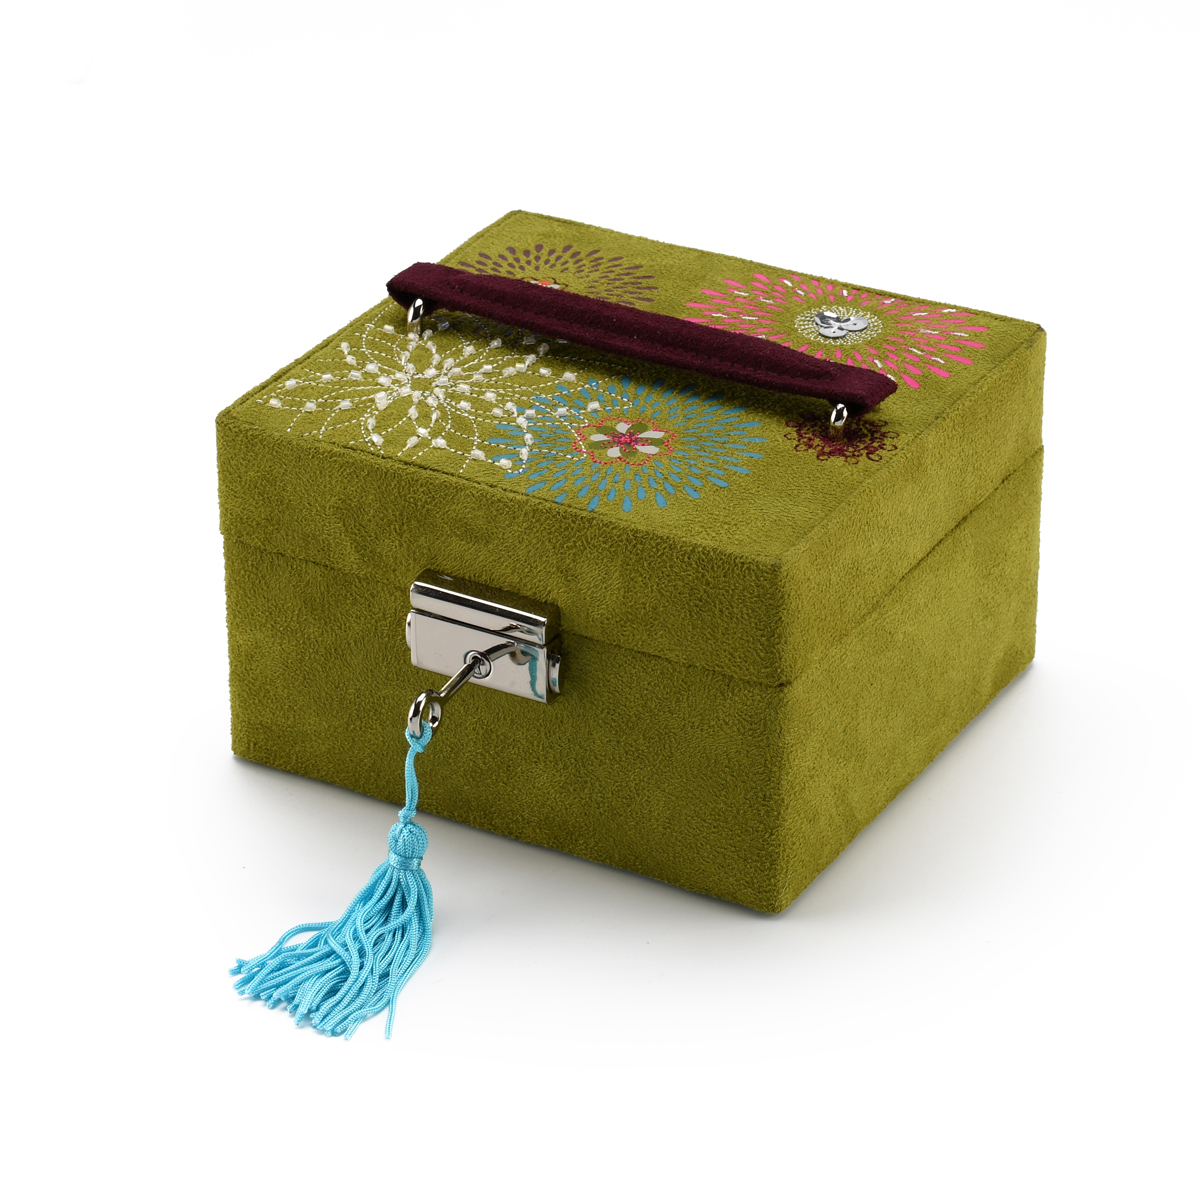 Vintage Green Jewelry Box with Embroidered Design